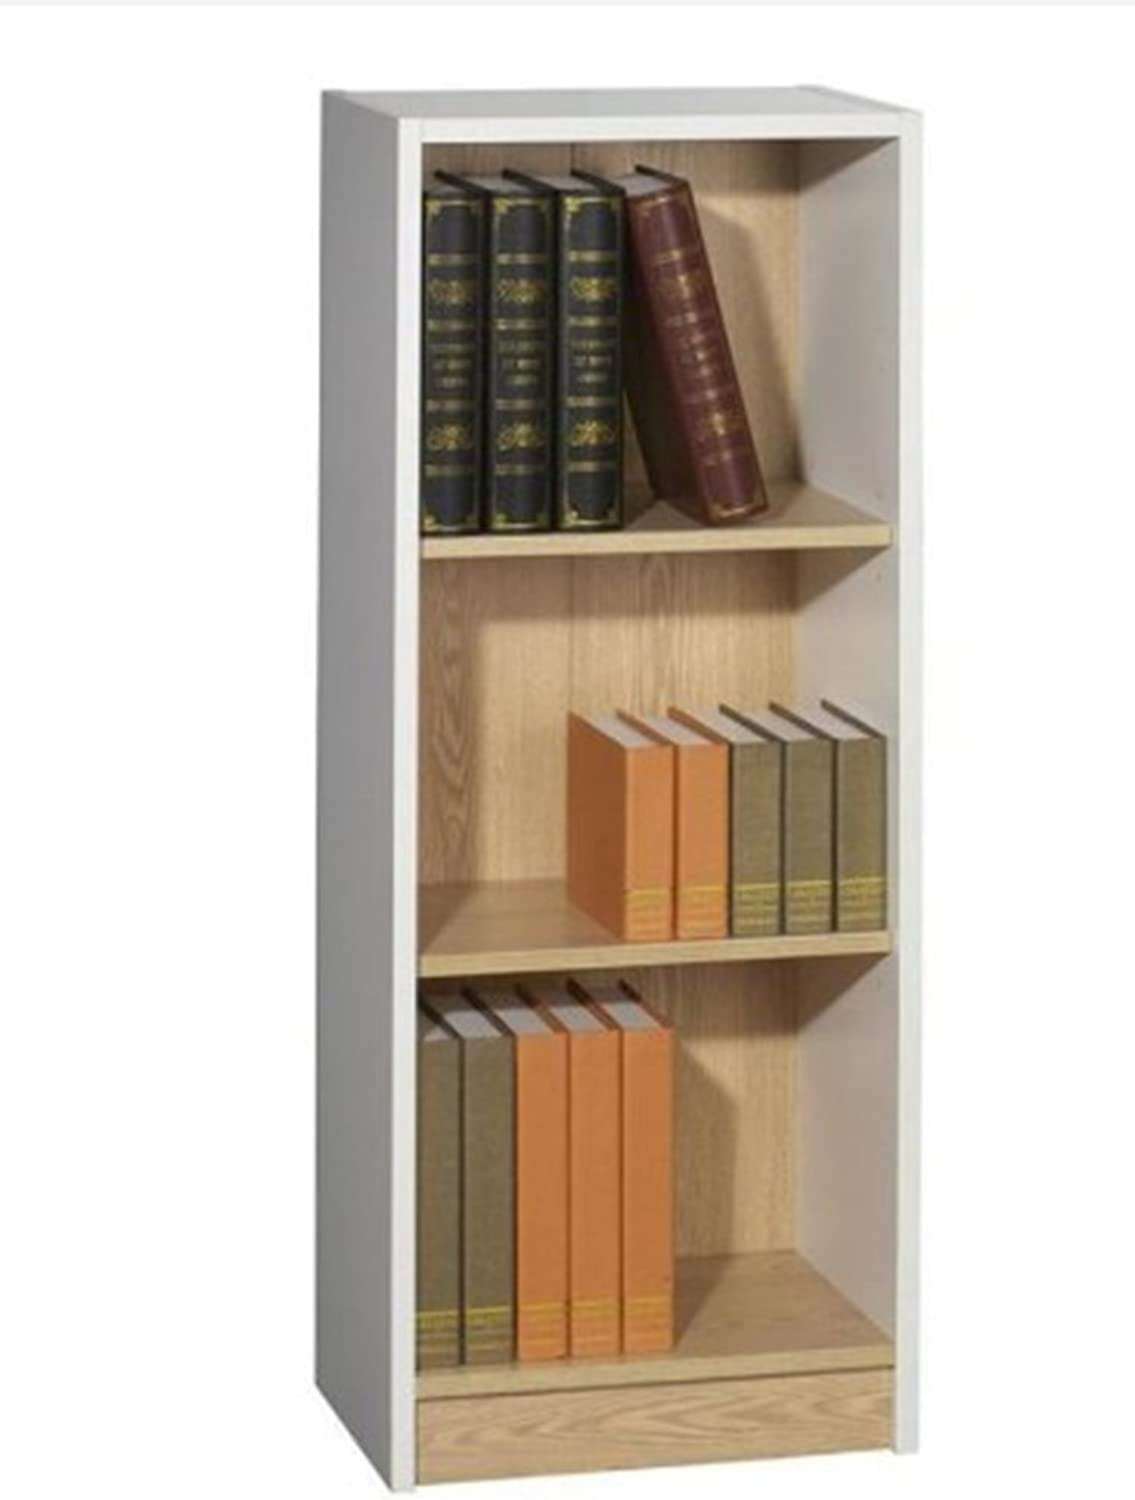 Rongda Furniture Bookcase, Factory Price Wholesale Wood Book Rack Open Shelf File Cabinet (B01)